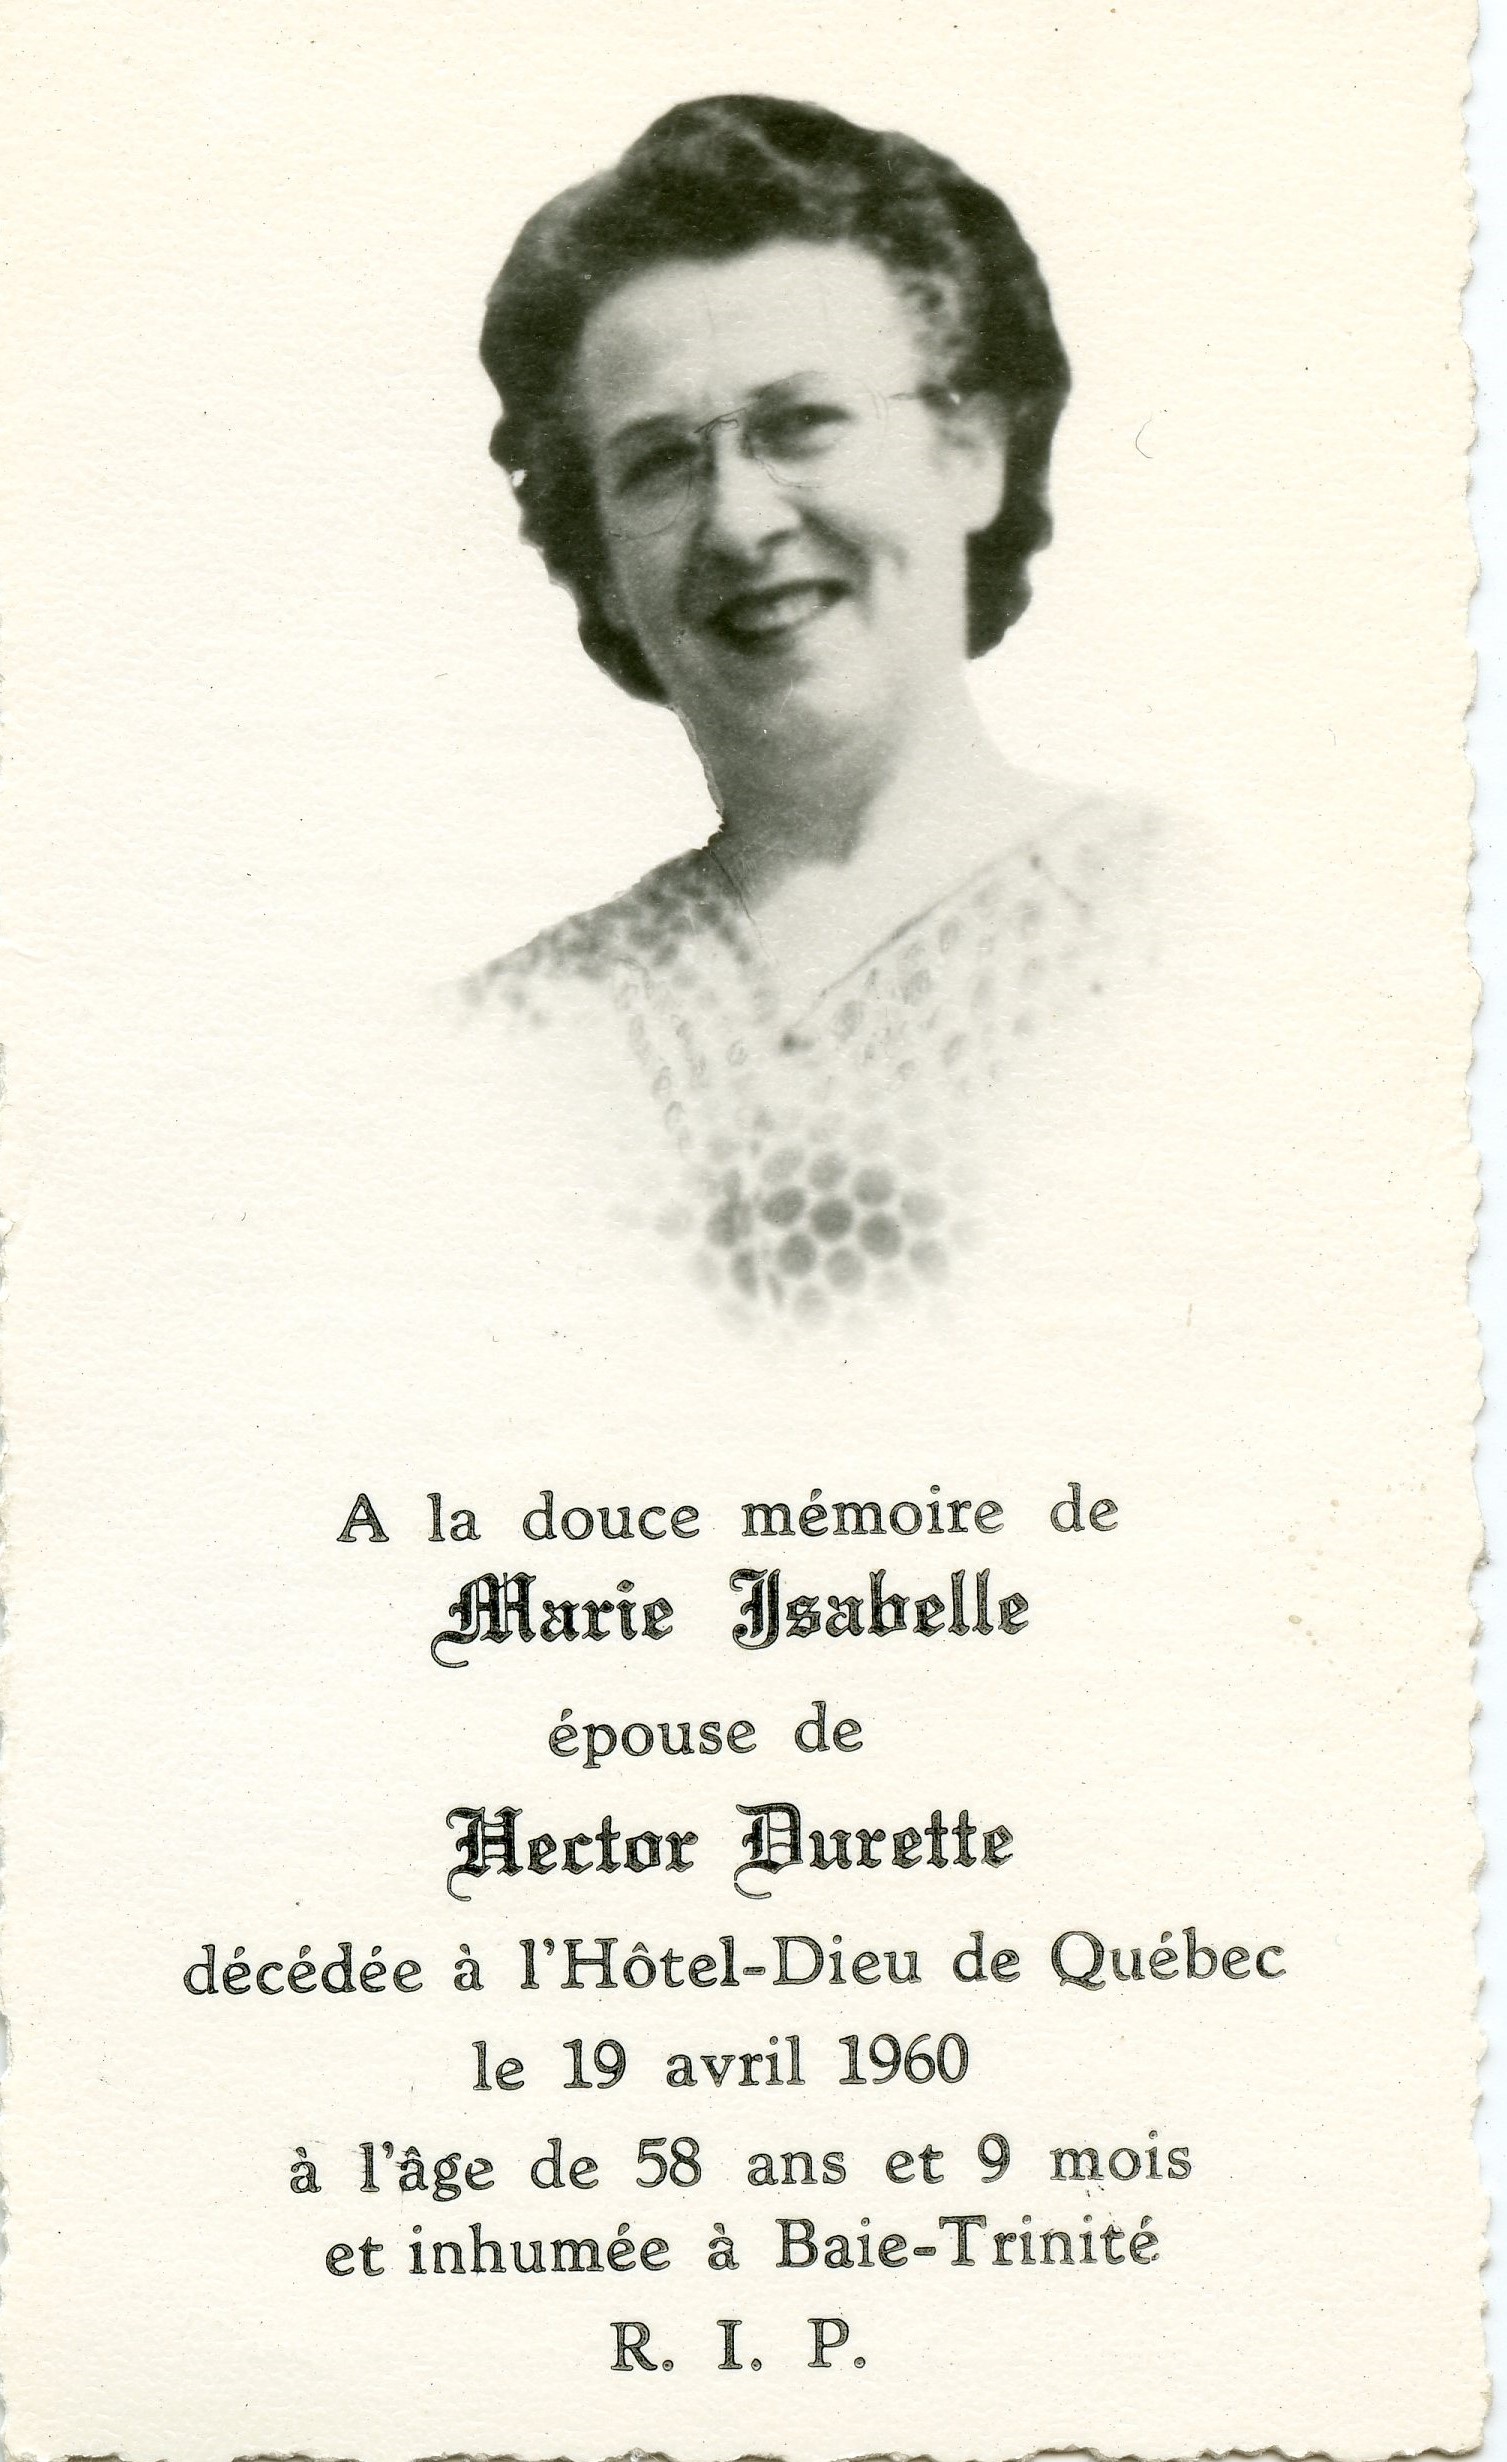 Marie Isabelle 1902-1960